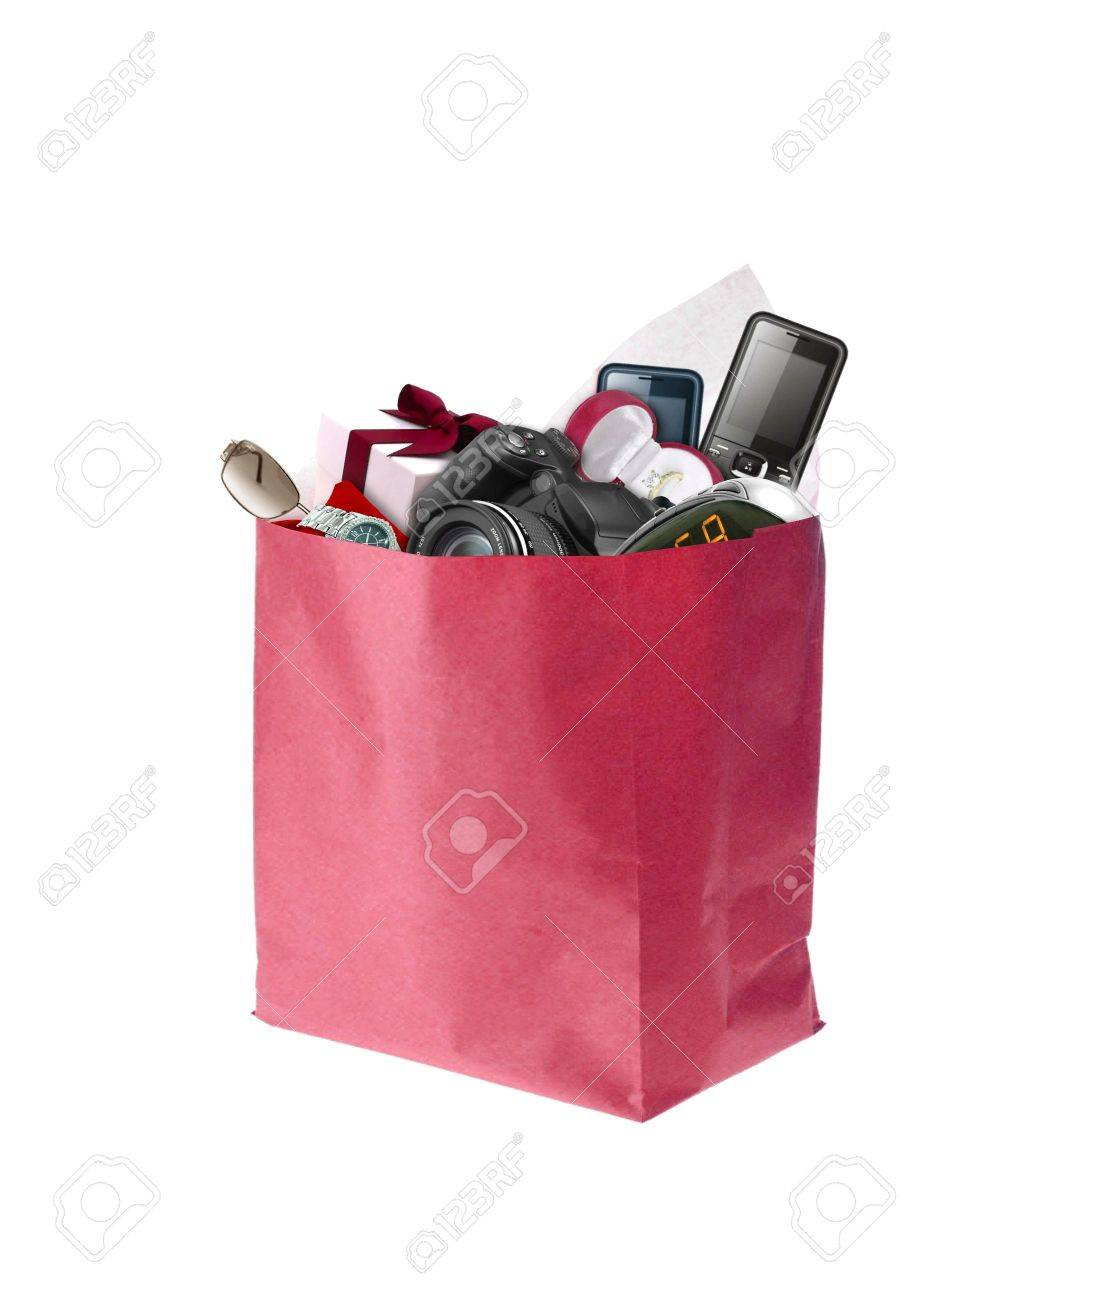 Image Of Shopping Bag Full With Product Stock Photo, Picture And ...